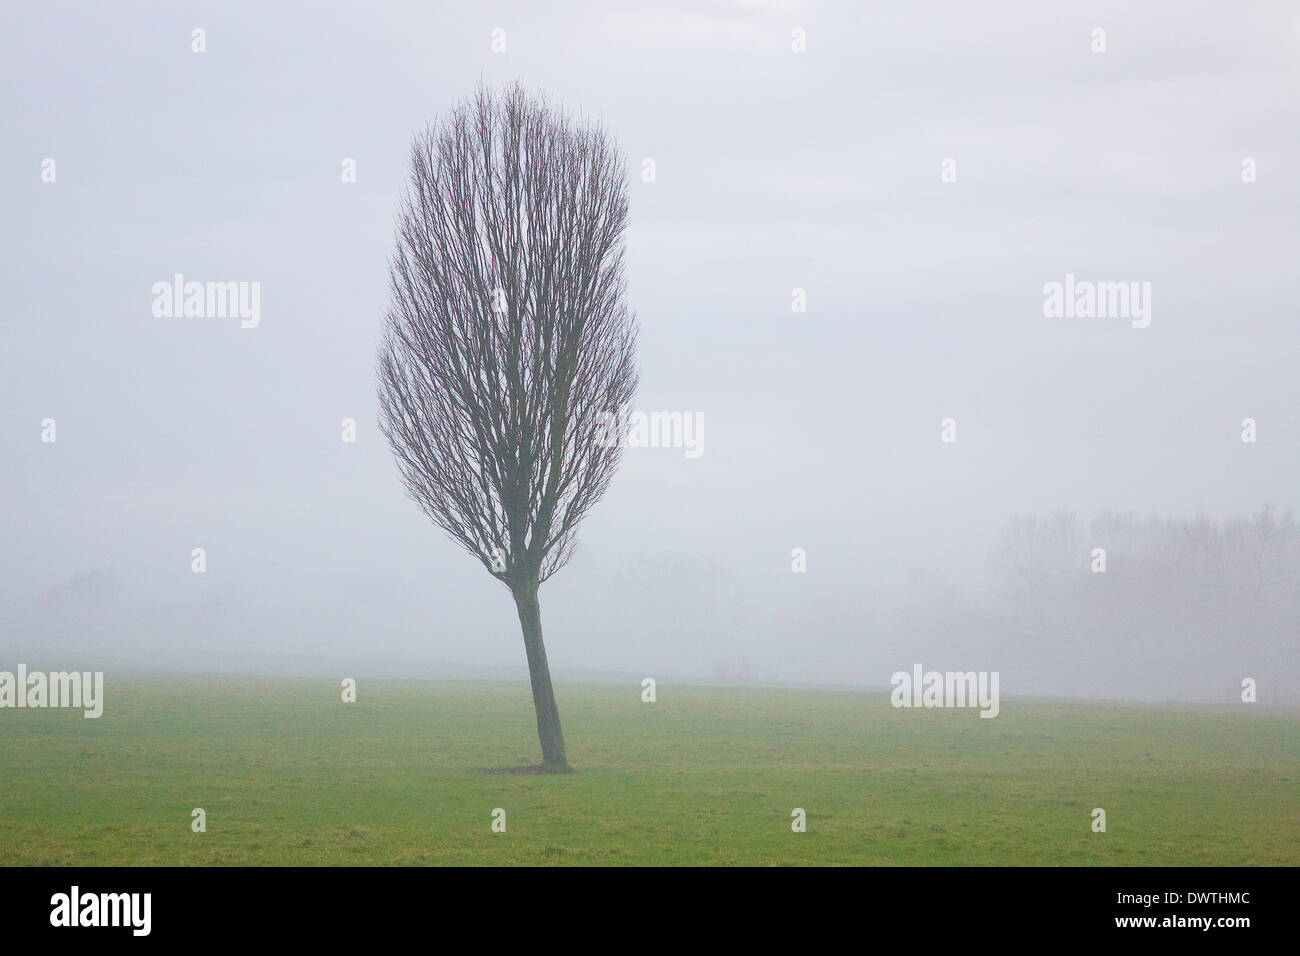 Tree against foggy background. Growing out of grass field. - Stock Image